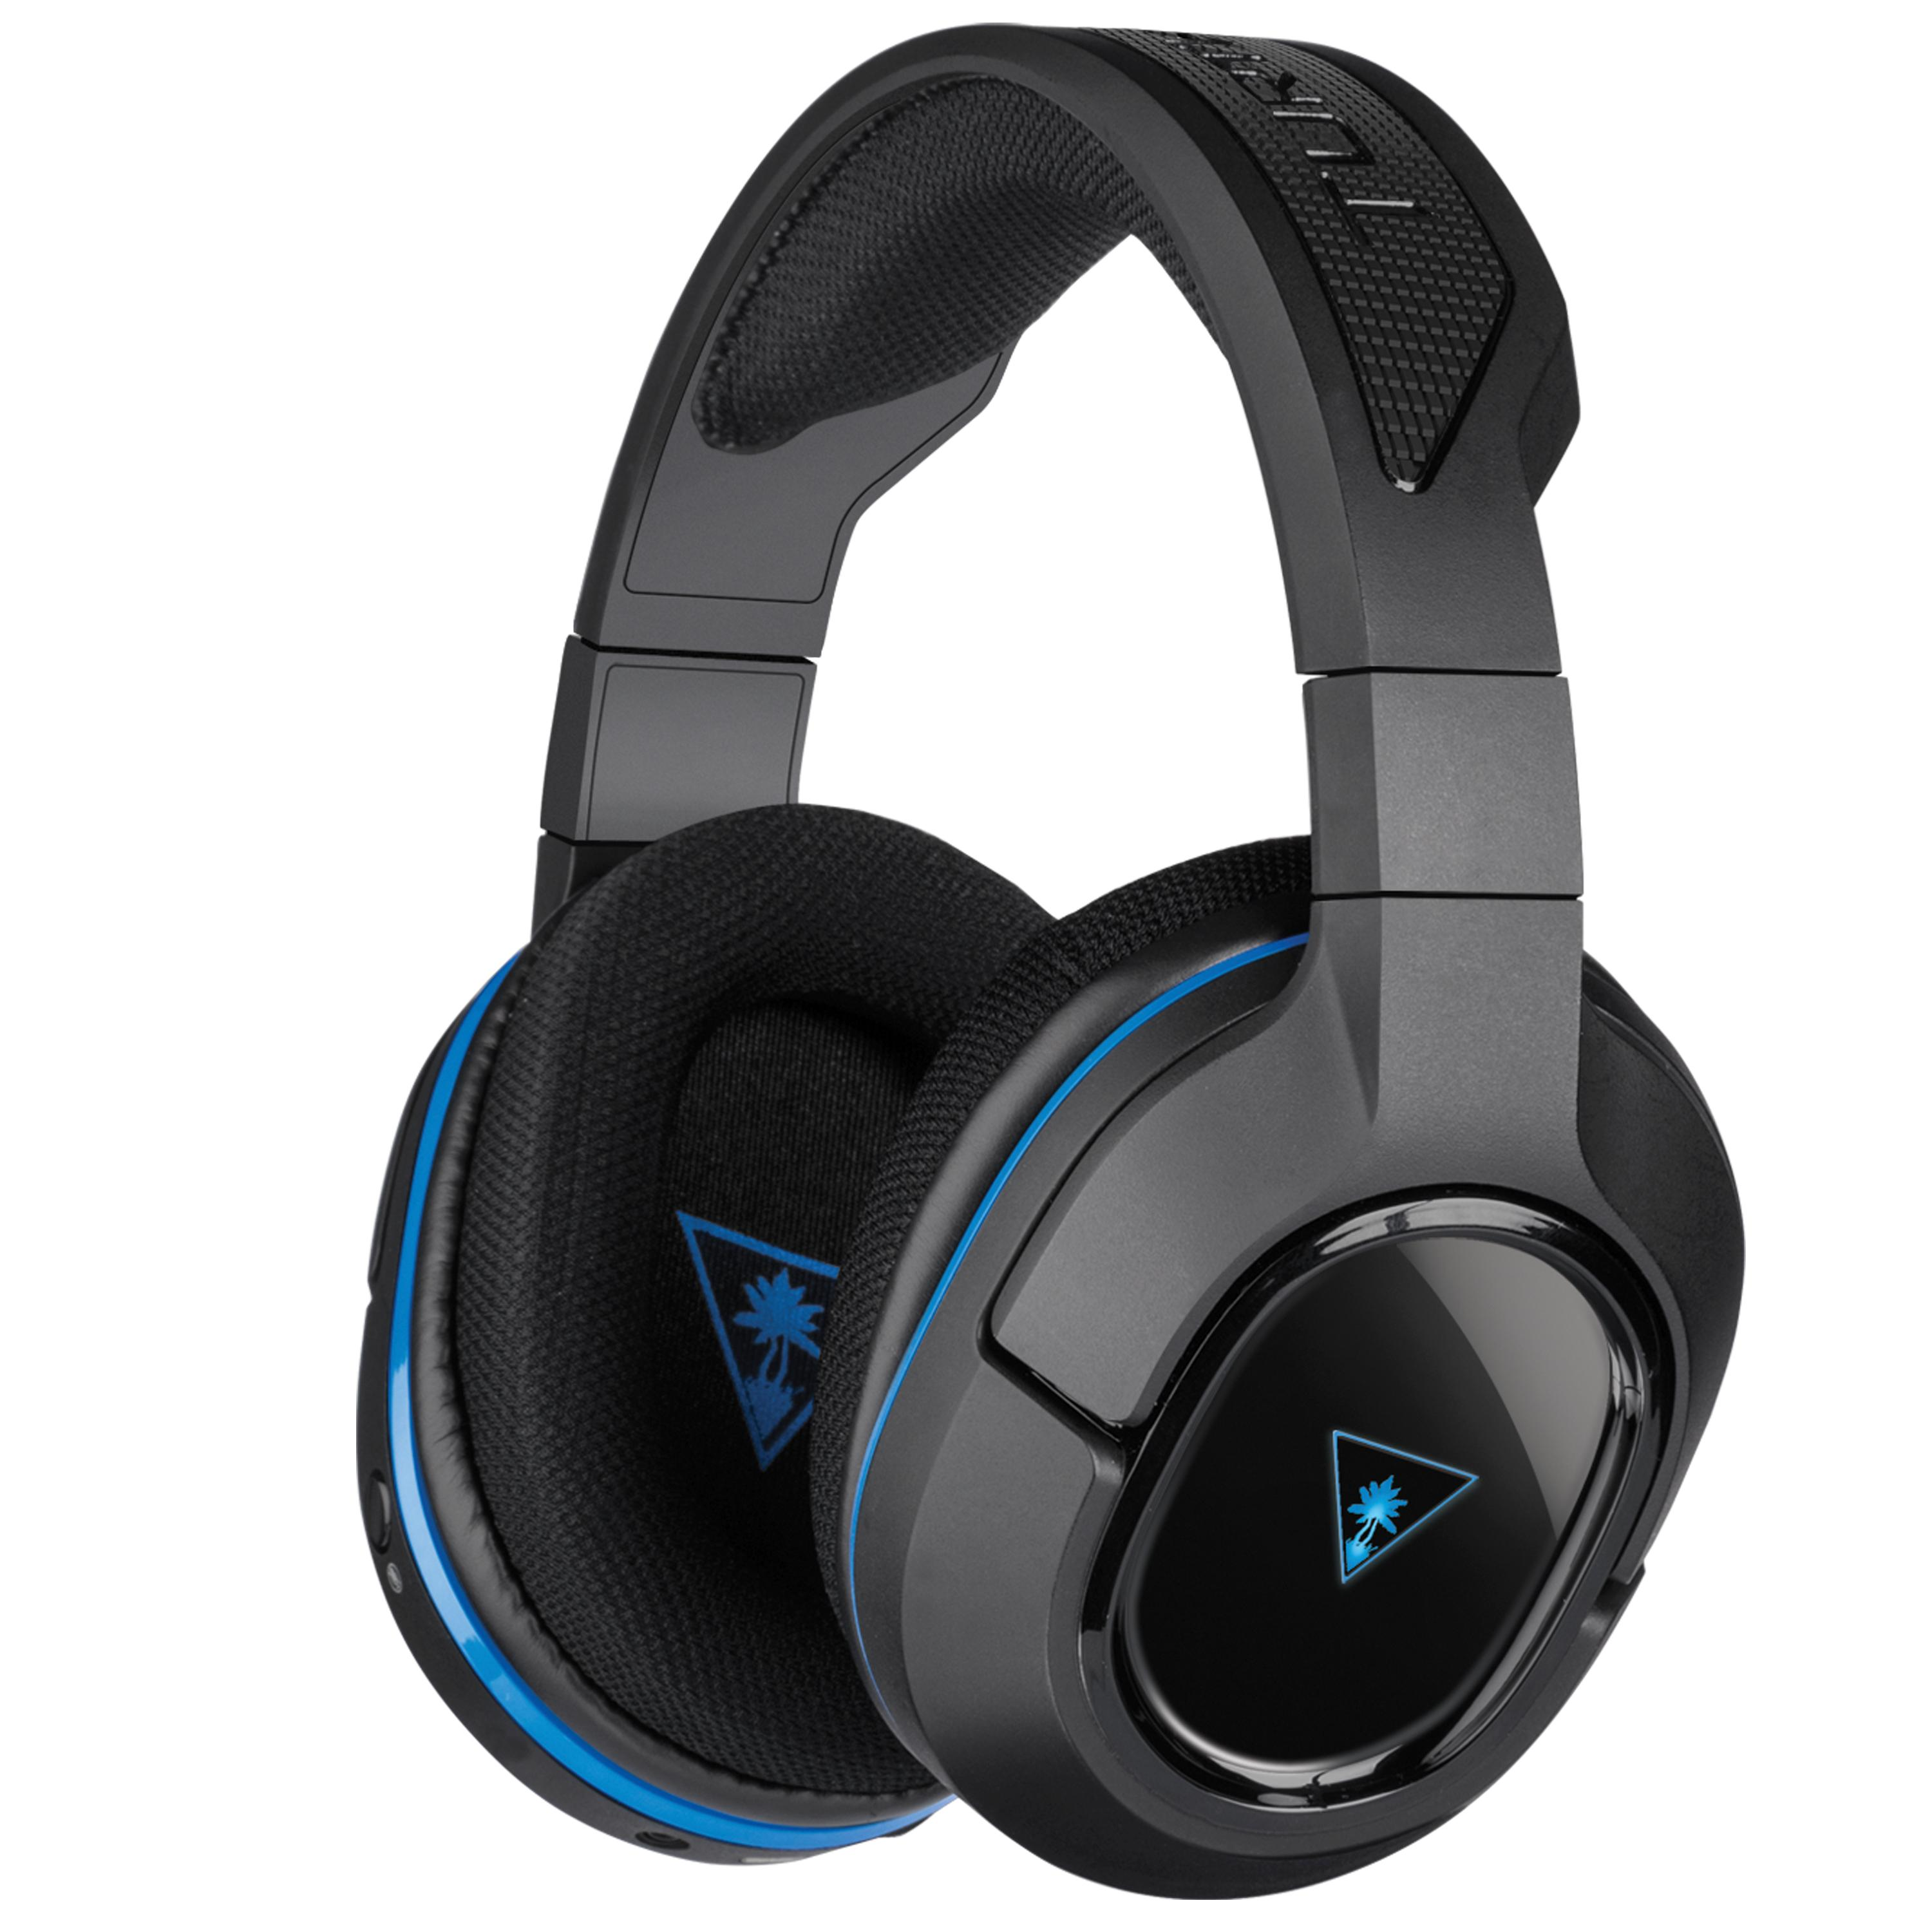 ps3 bluetooth headset instructions